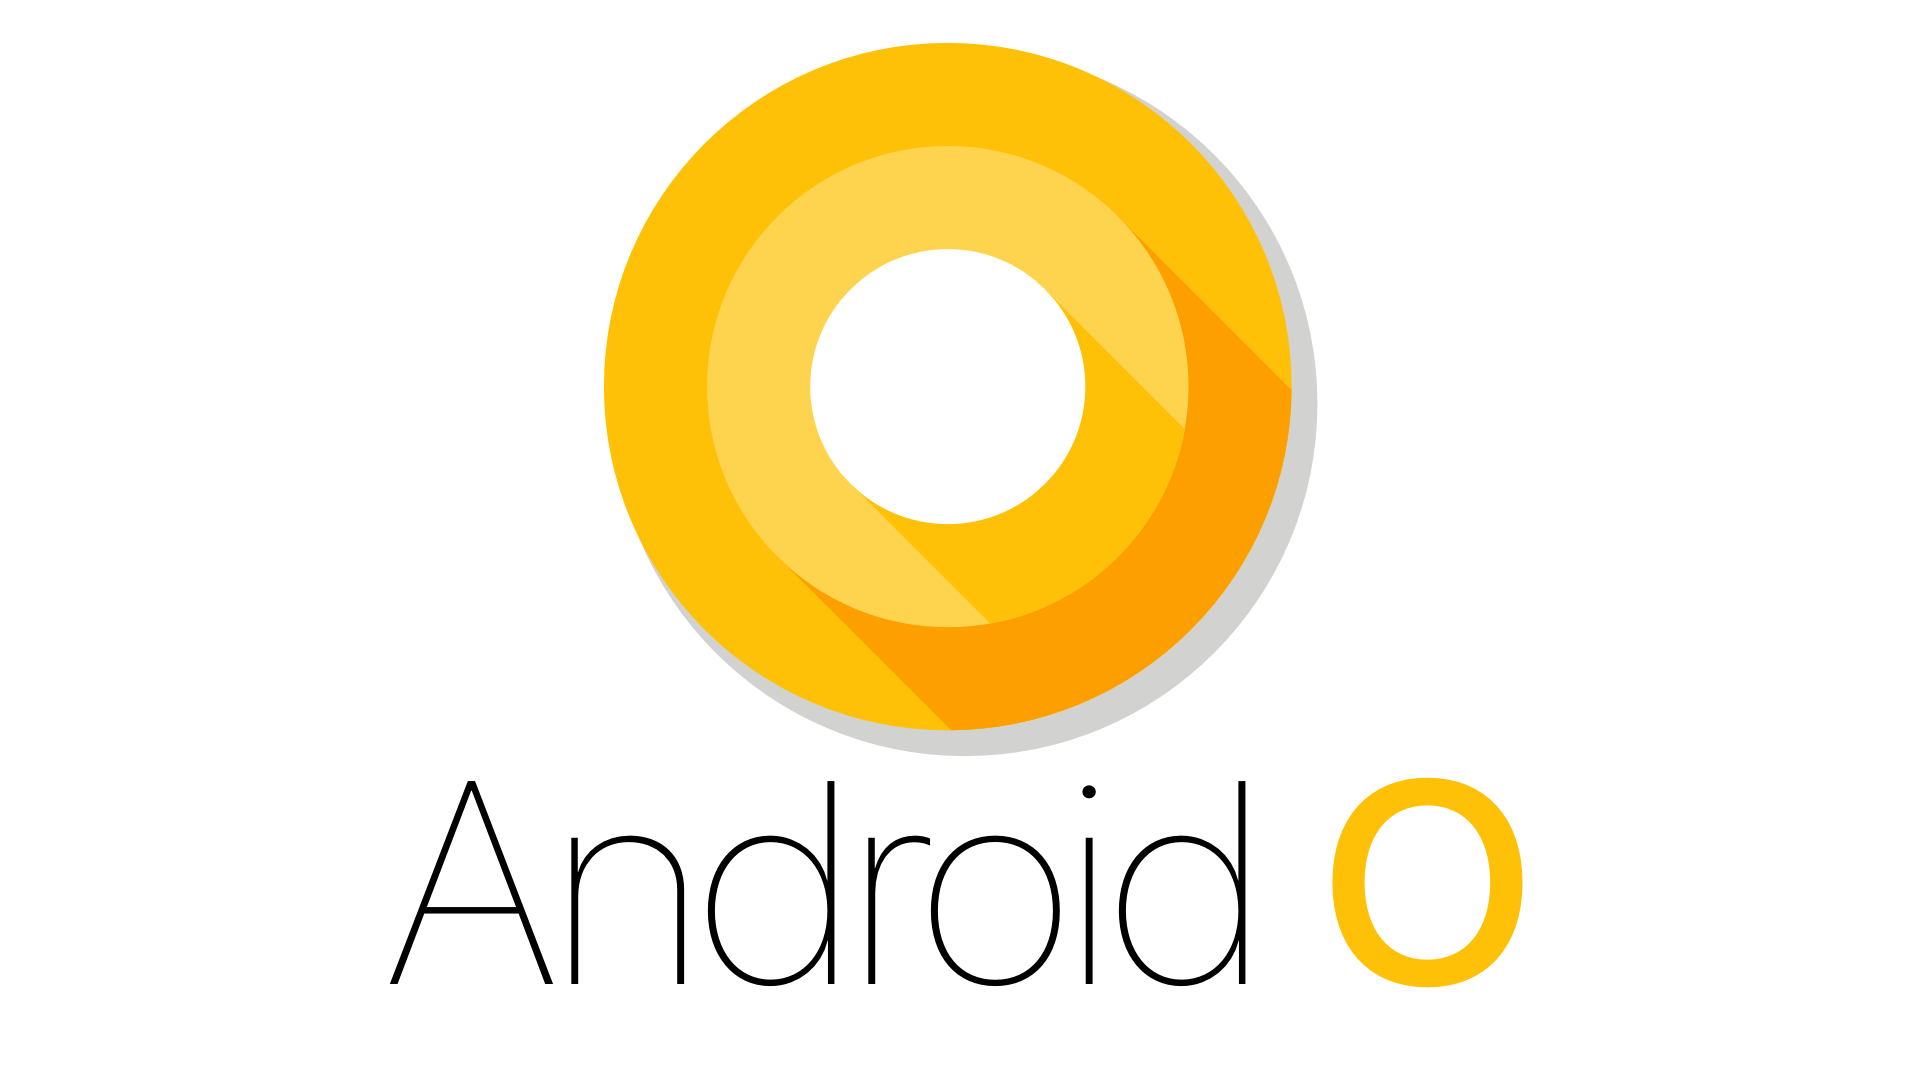 Download and Install Android 8.0 O On any Android Phone